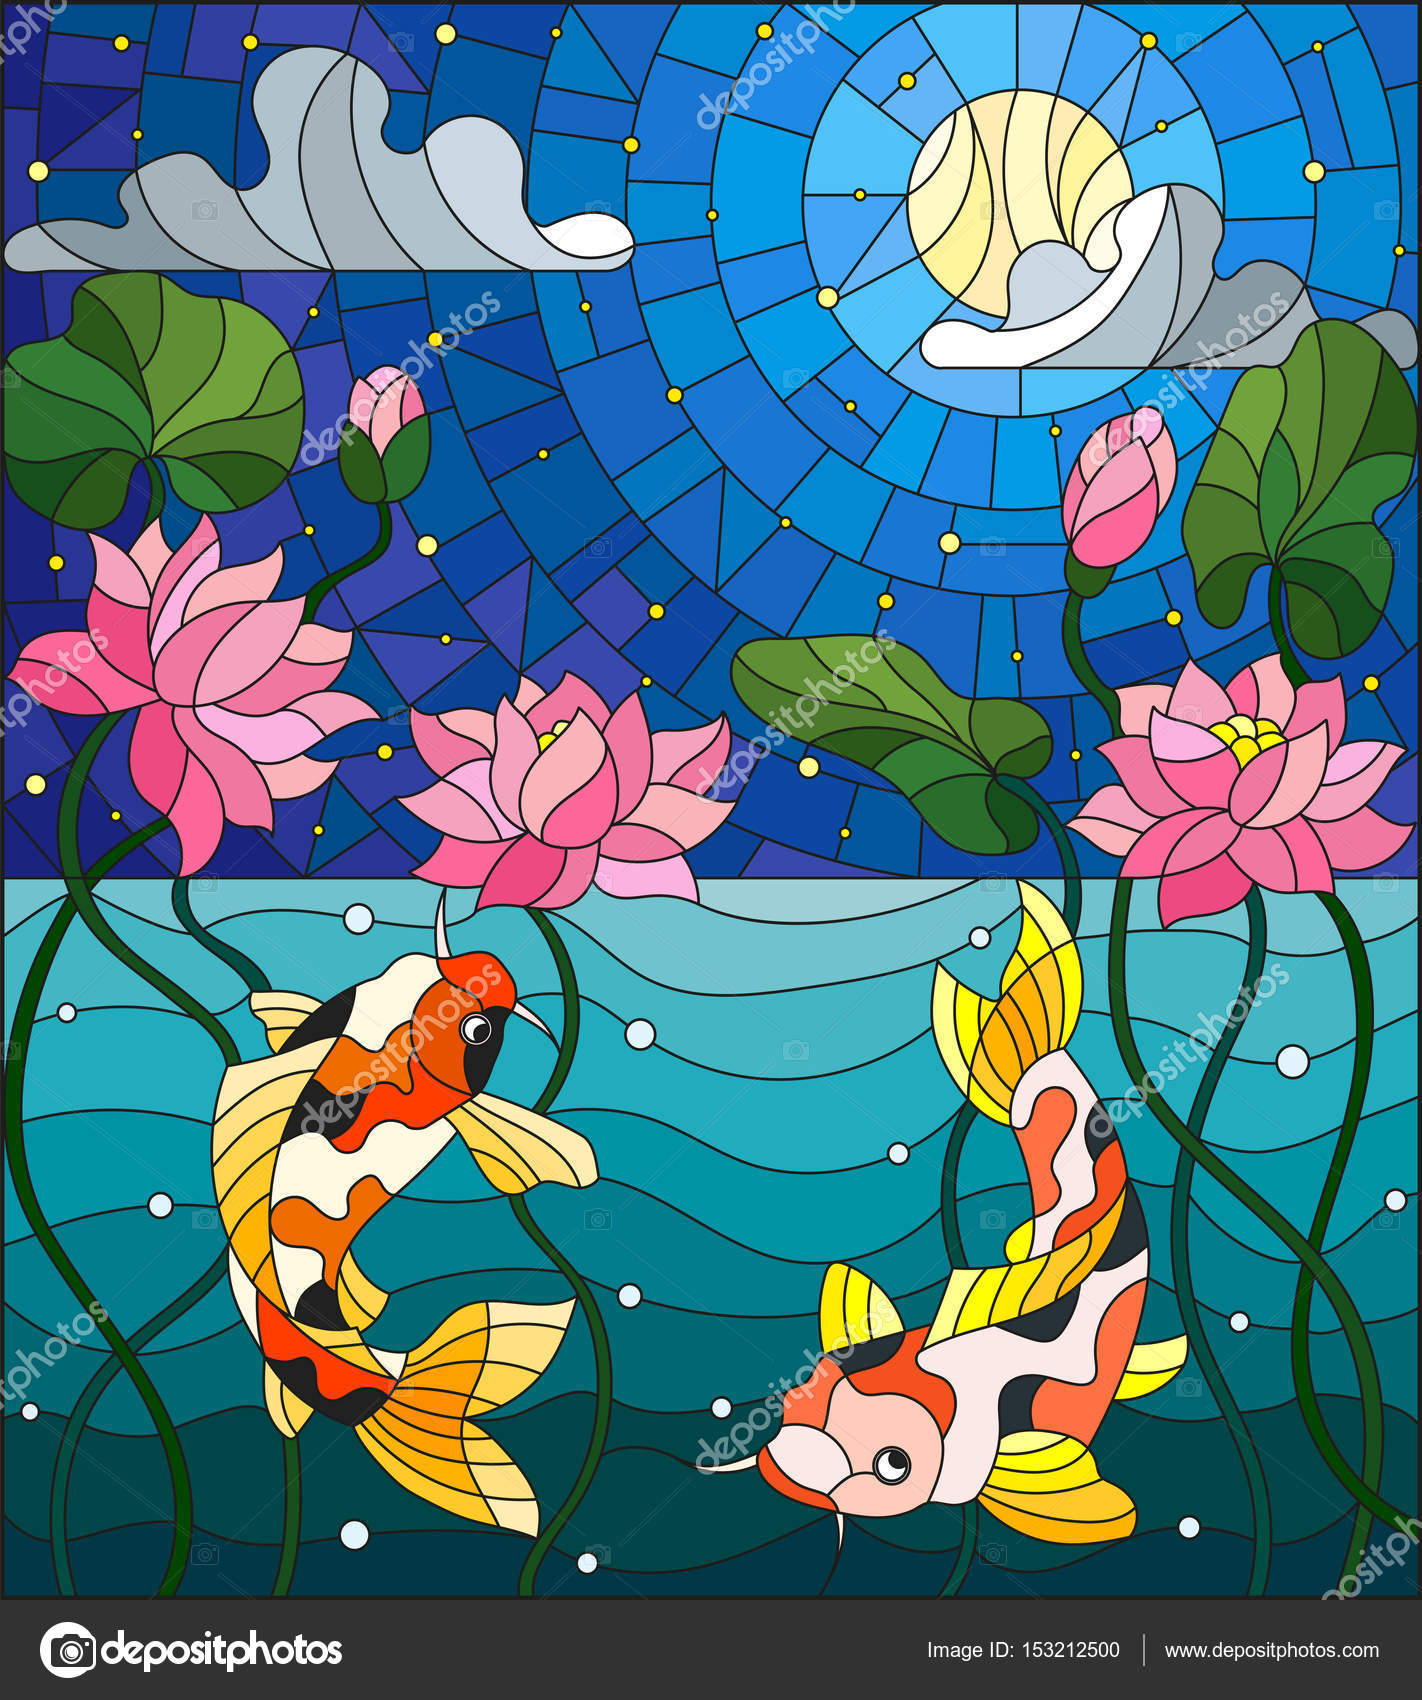 Illustration in stained glass style with koi fish and lotus flowers illustration in stained glass style with koi fish and lotus flowers on a background of the izmirmasajfo